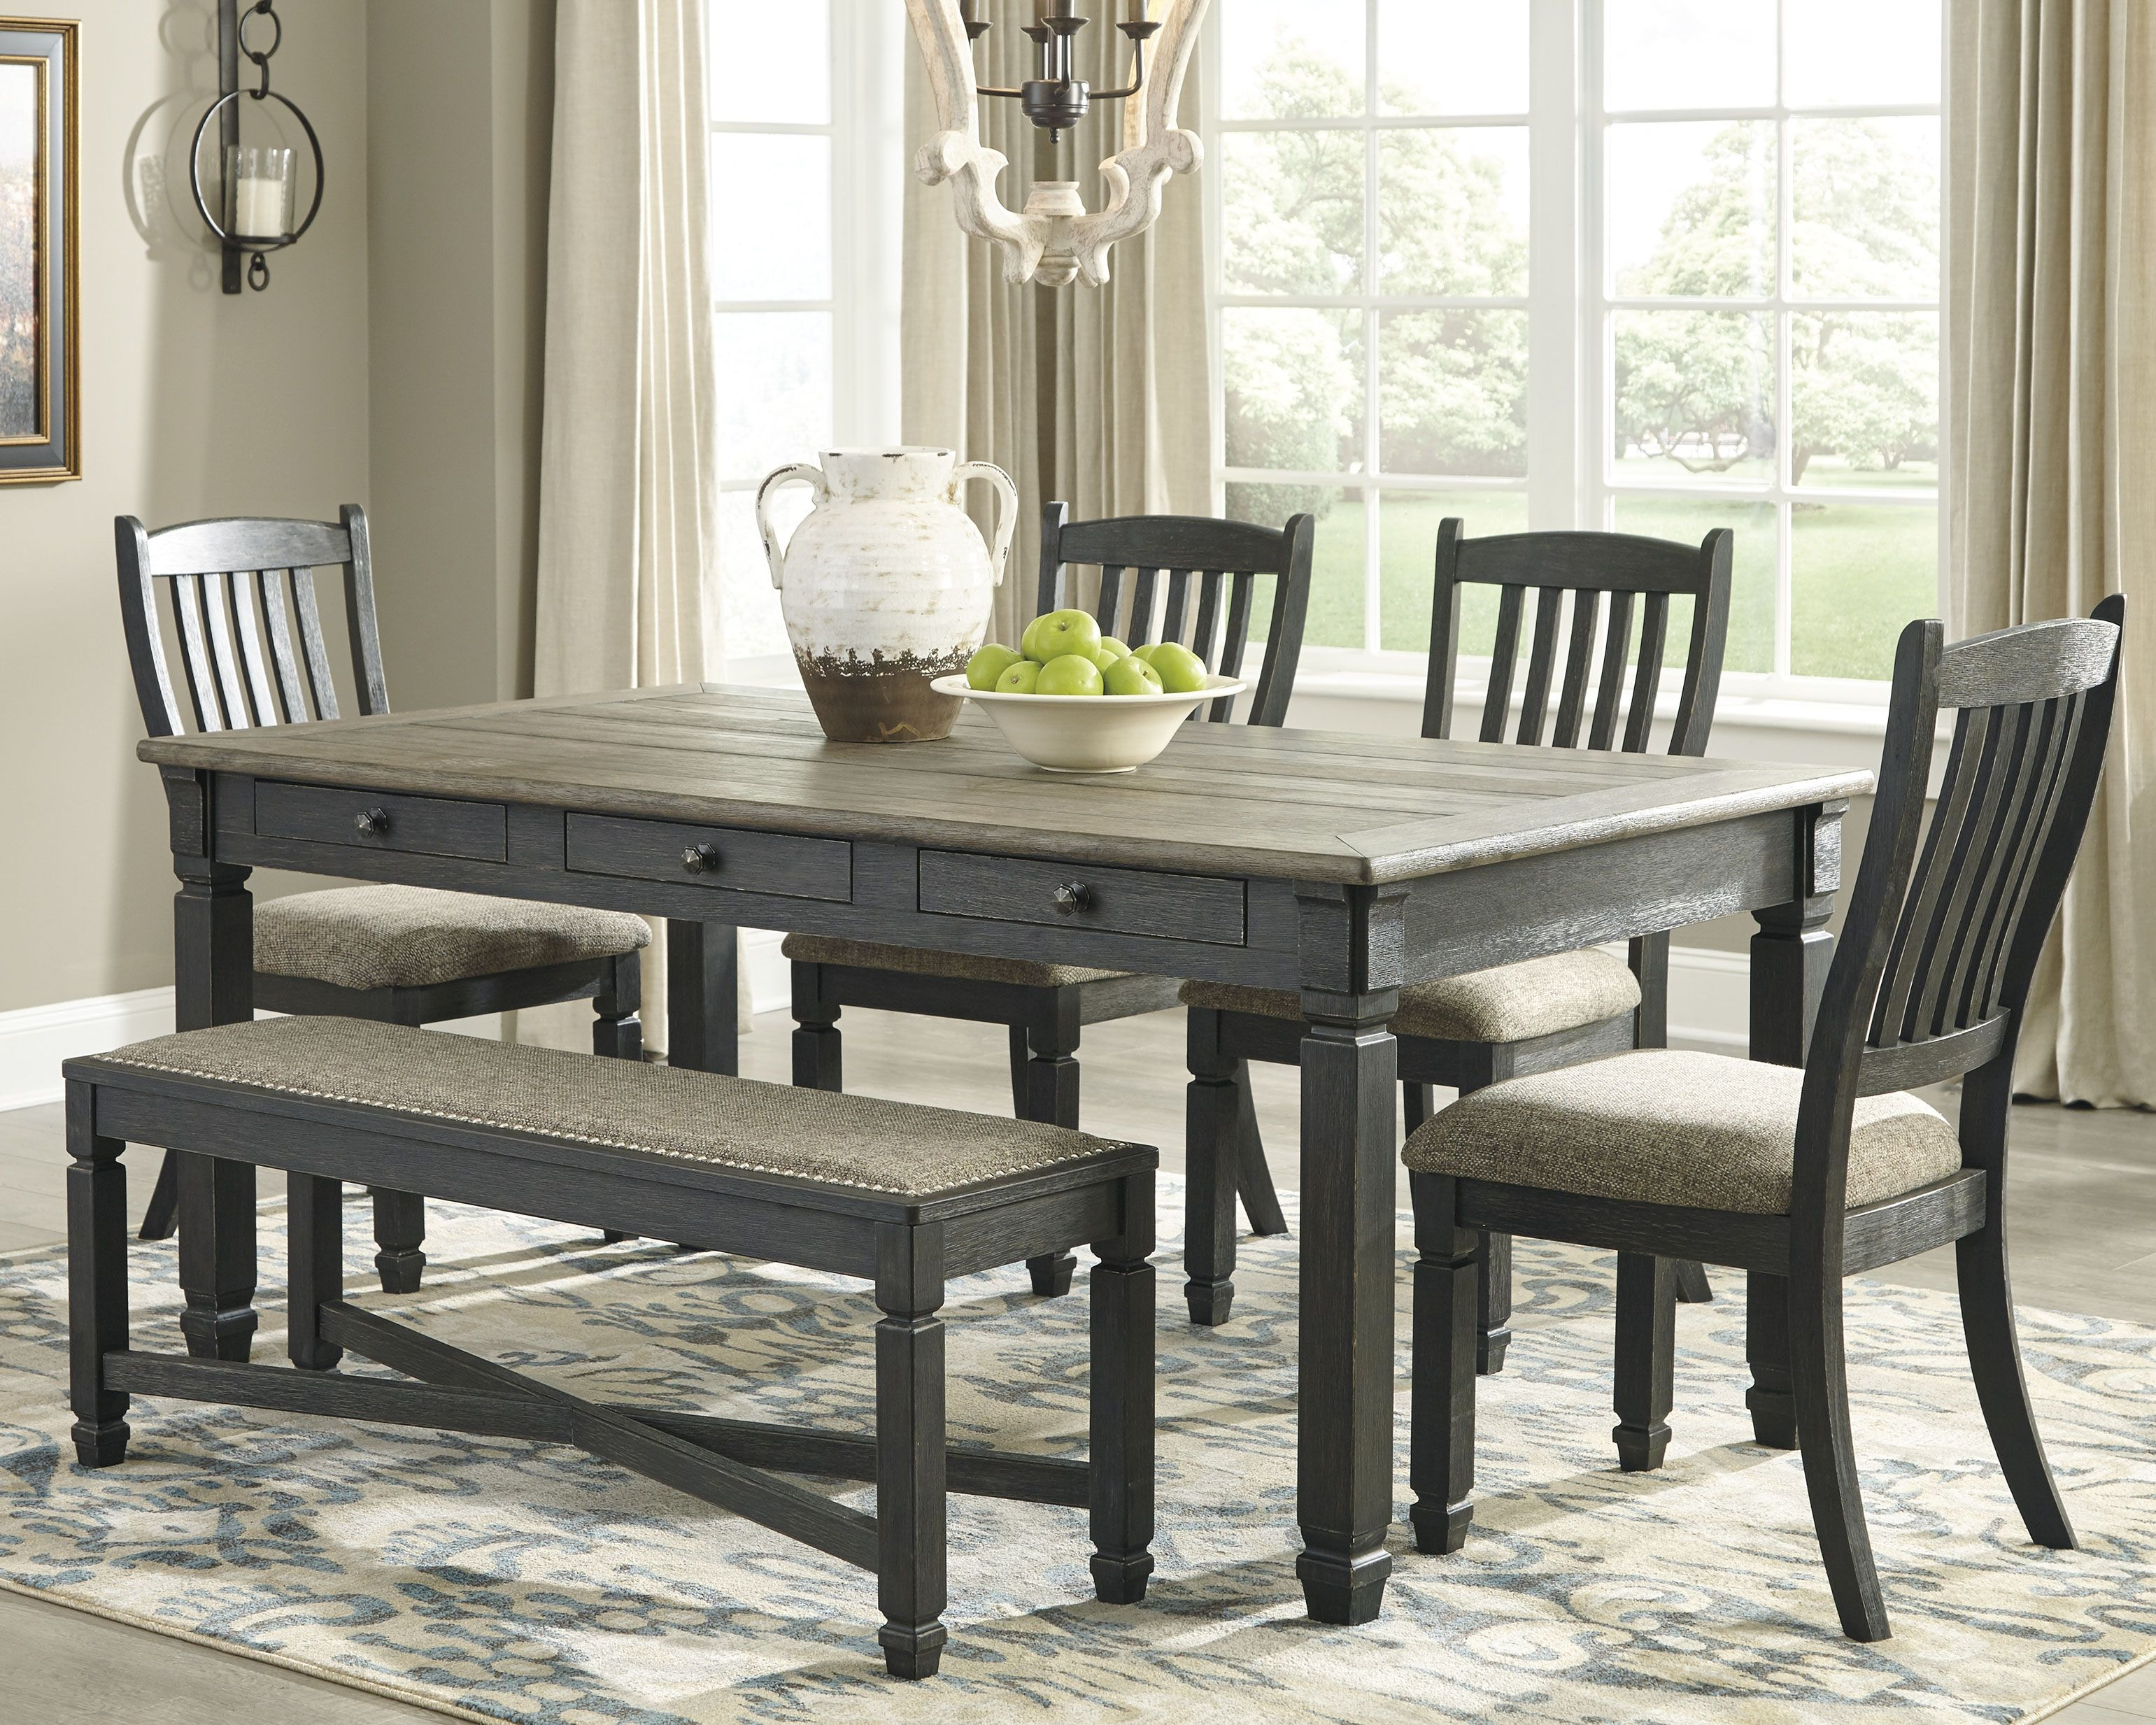 36+ Tyler creek counter height dining table Ideas